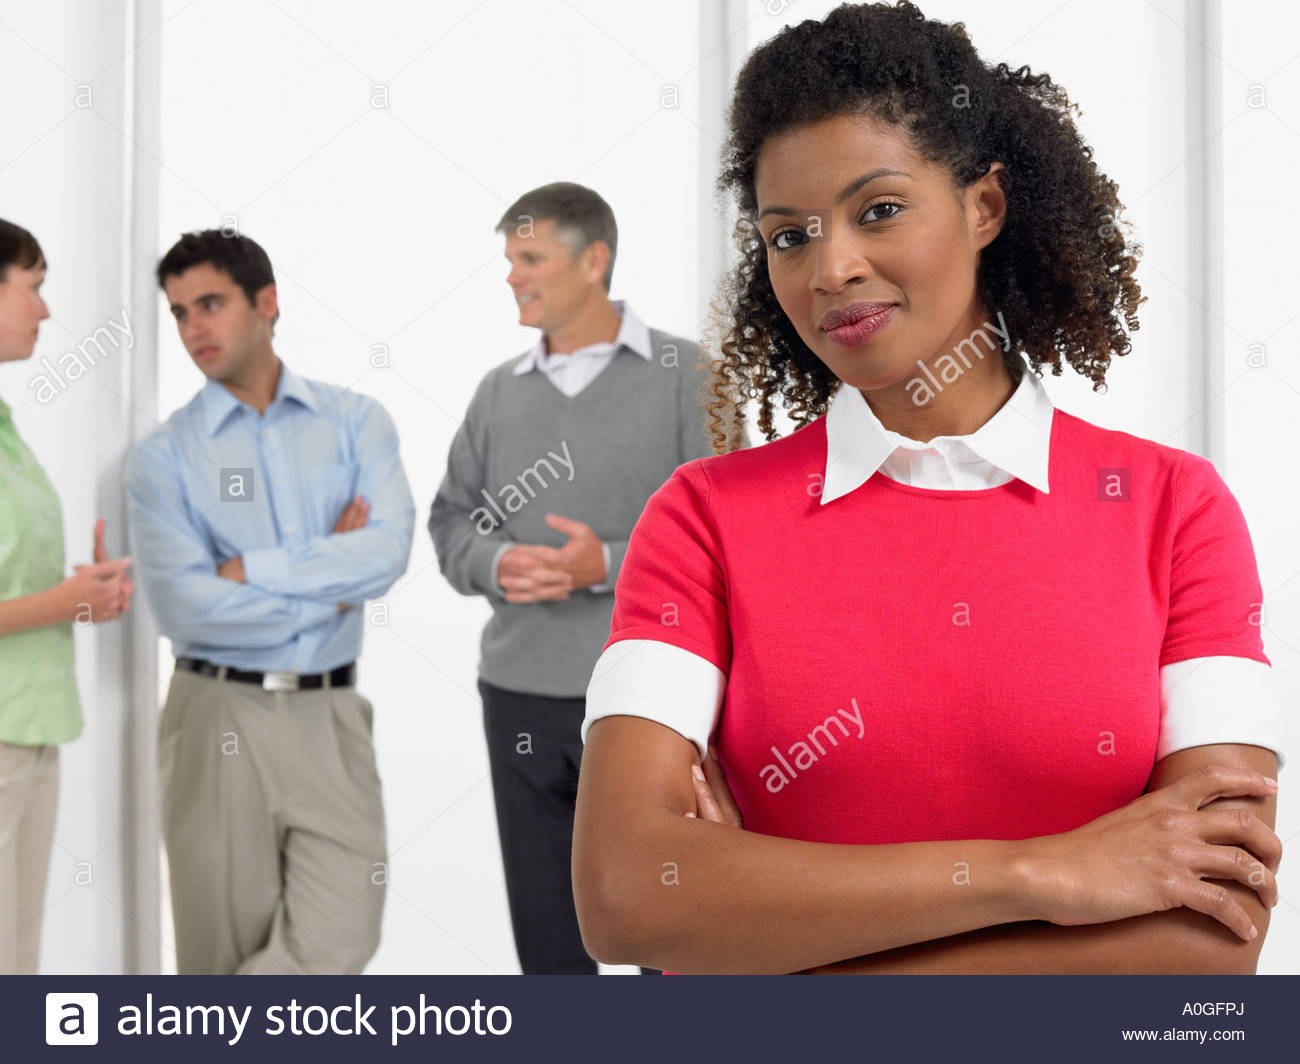 Female office worker with arms crossed Photo Stock